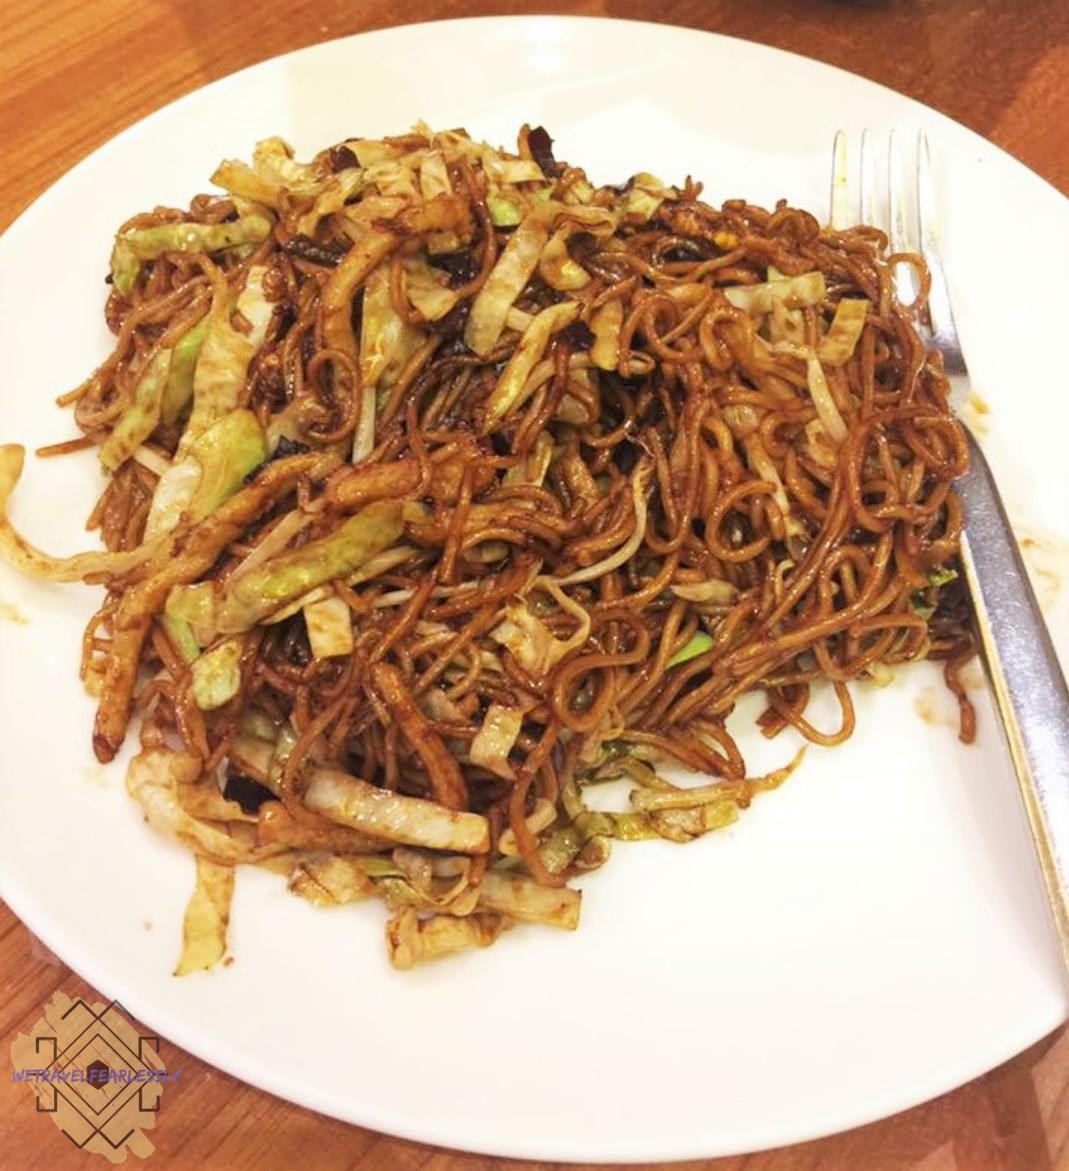 Stir-fried La Mian with Shredded Pork and Black Fungus (PHP238) in Paradise Dynasty in S Maison, Pasay City - WTF Review